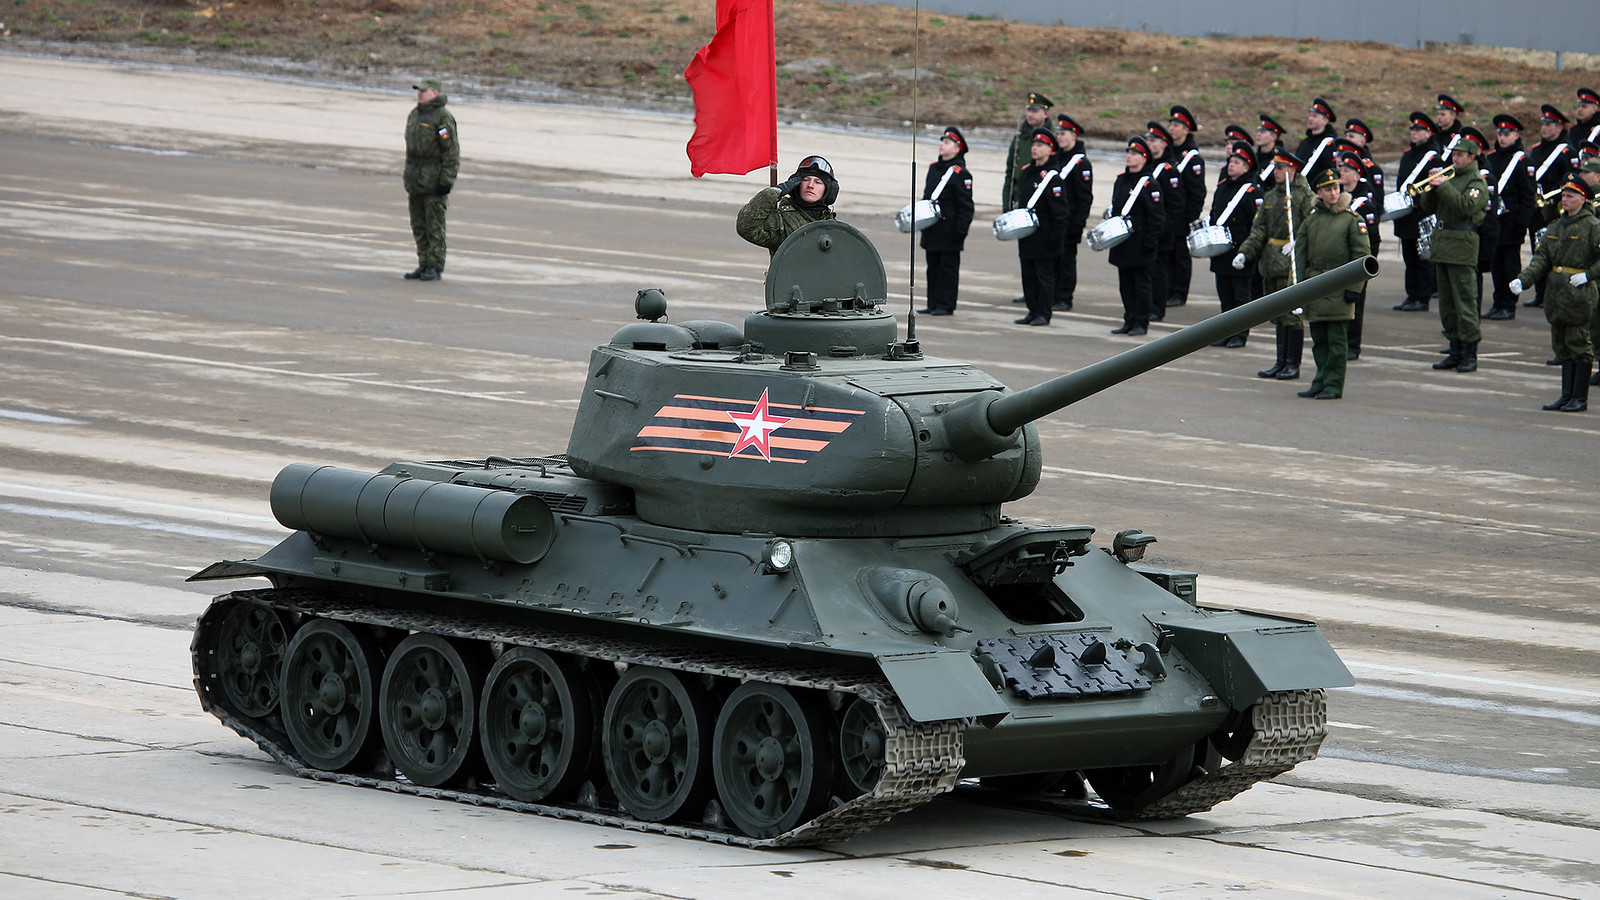 Tanque T-34.